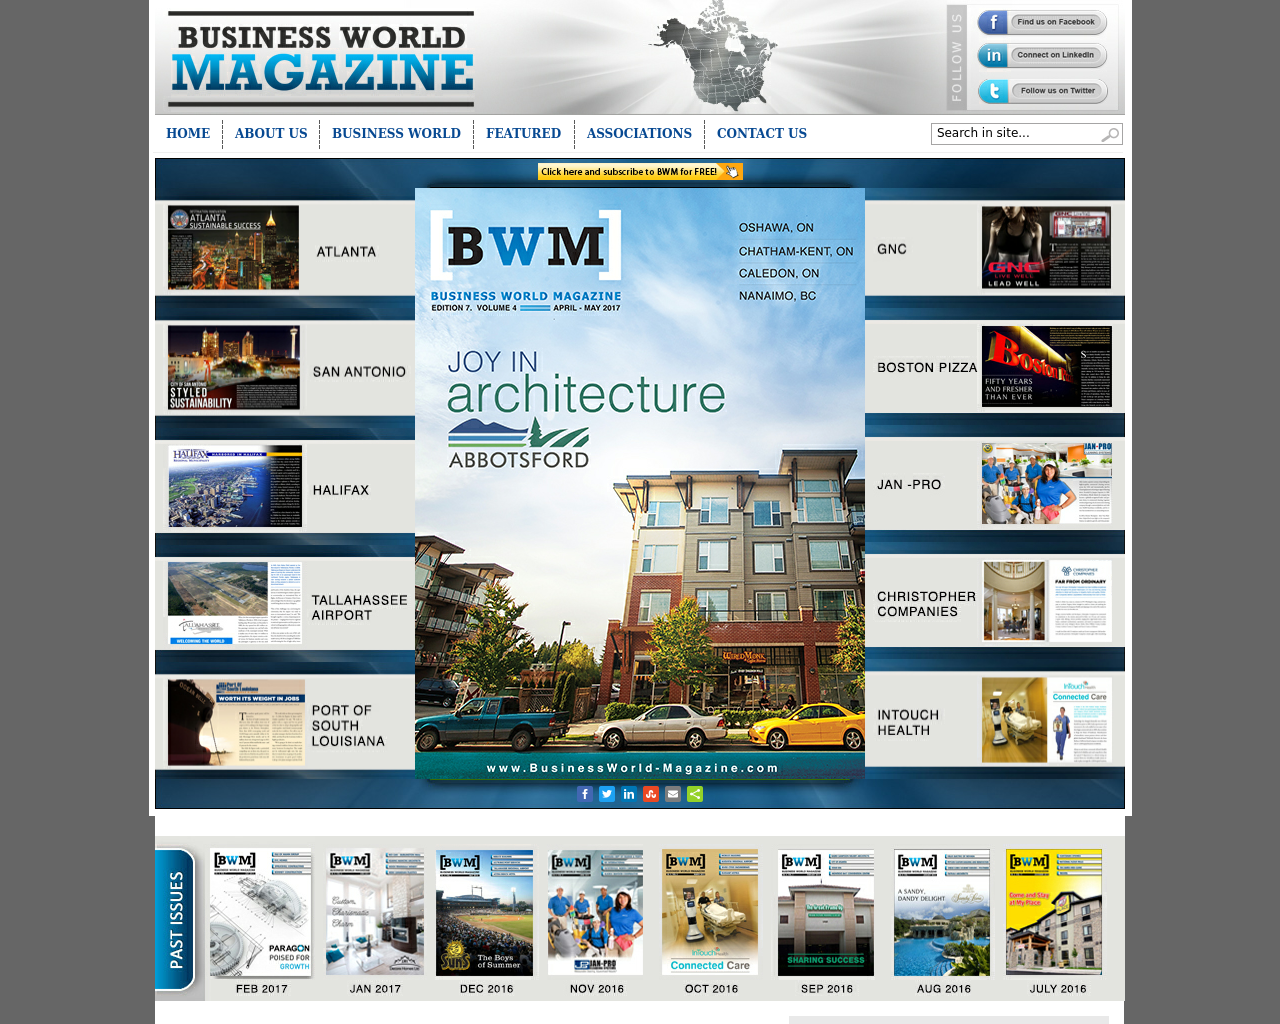 Business-World-Magazine-Advertising-Reviews-Pricing